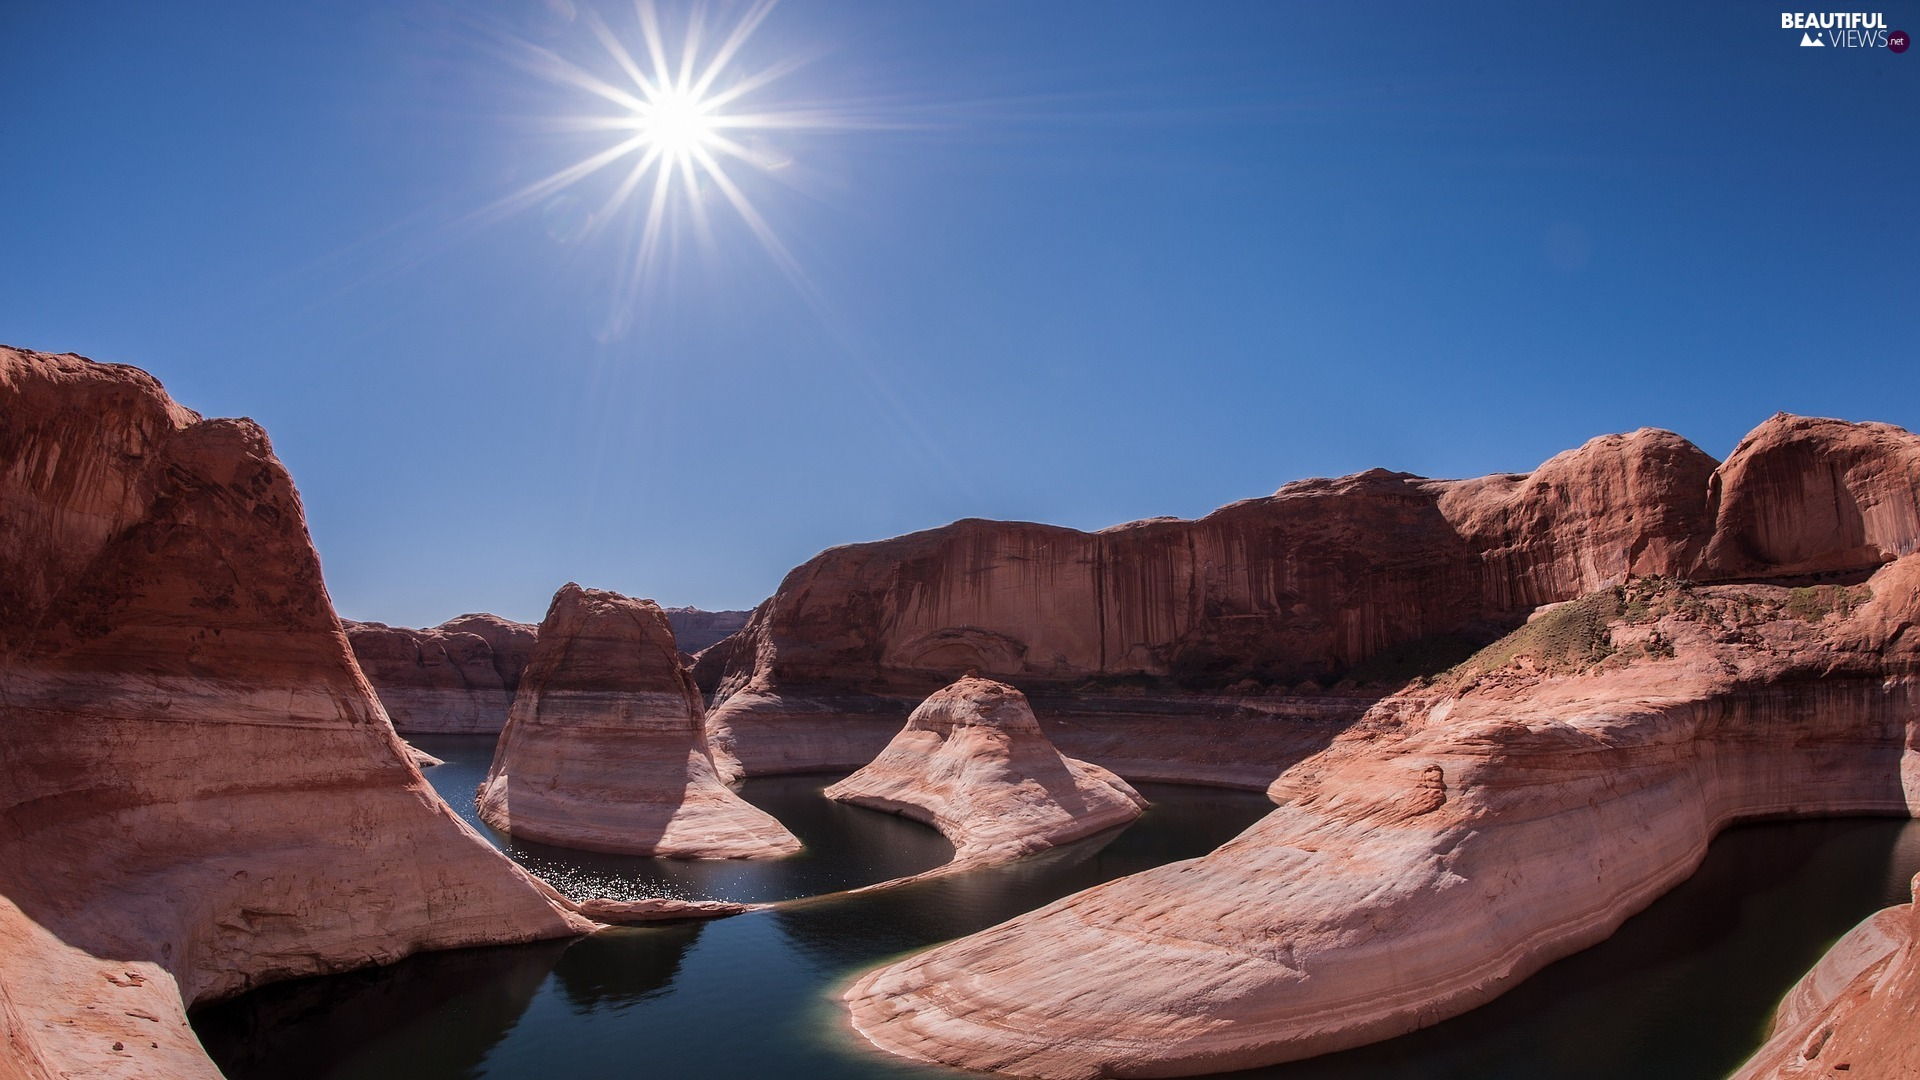 The United States, Powell Lake, rays of the Sun, Glen Canyon